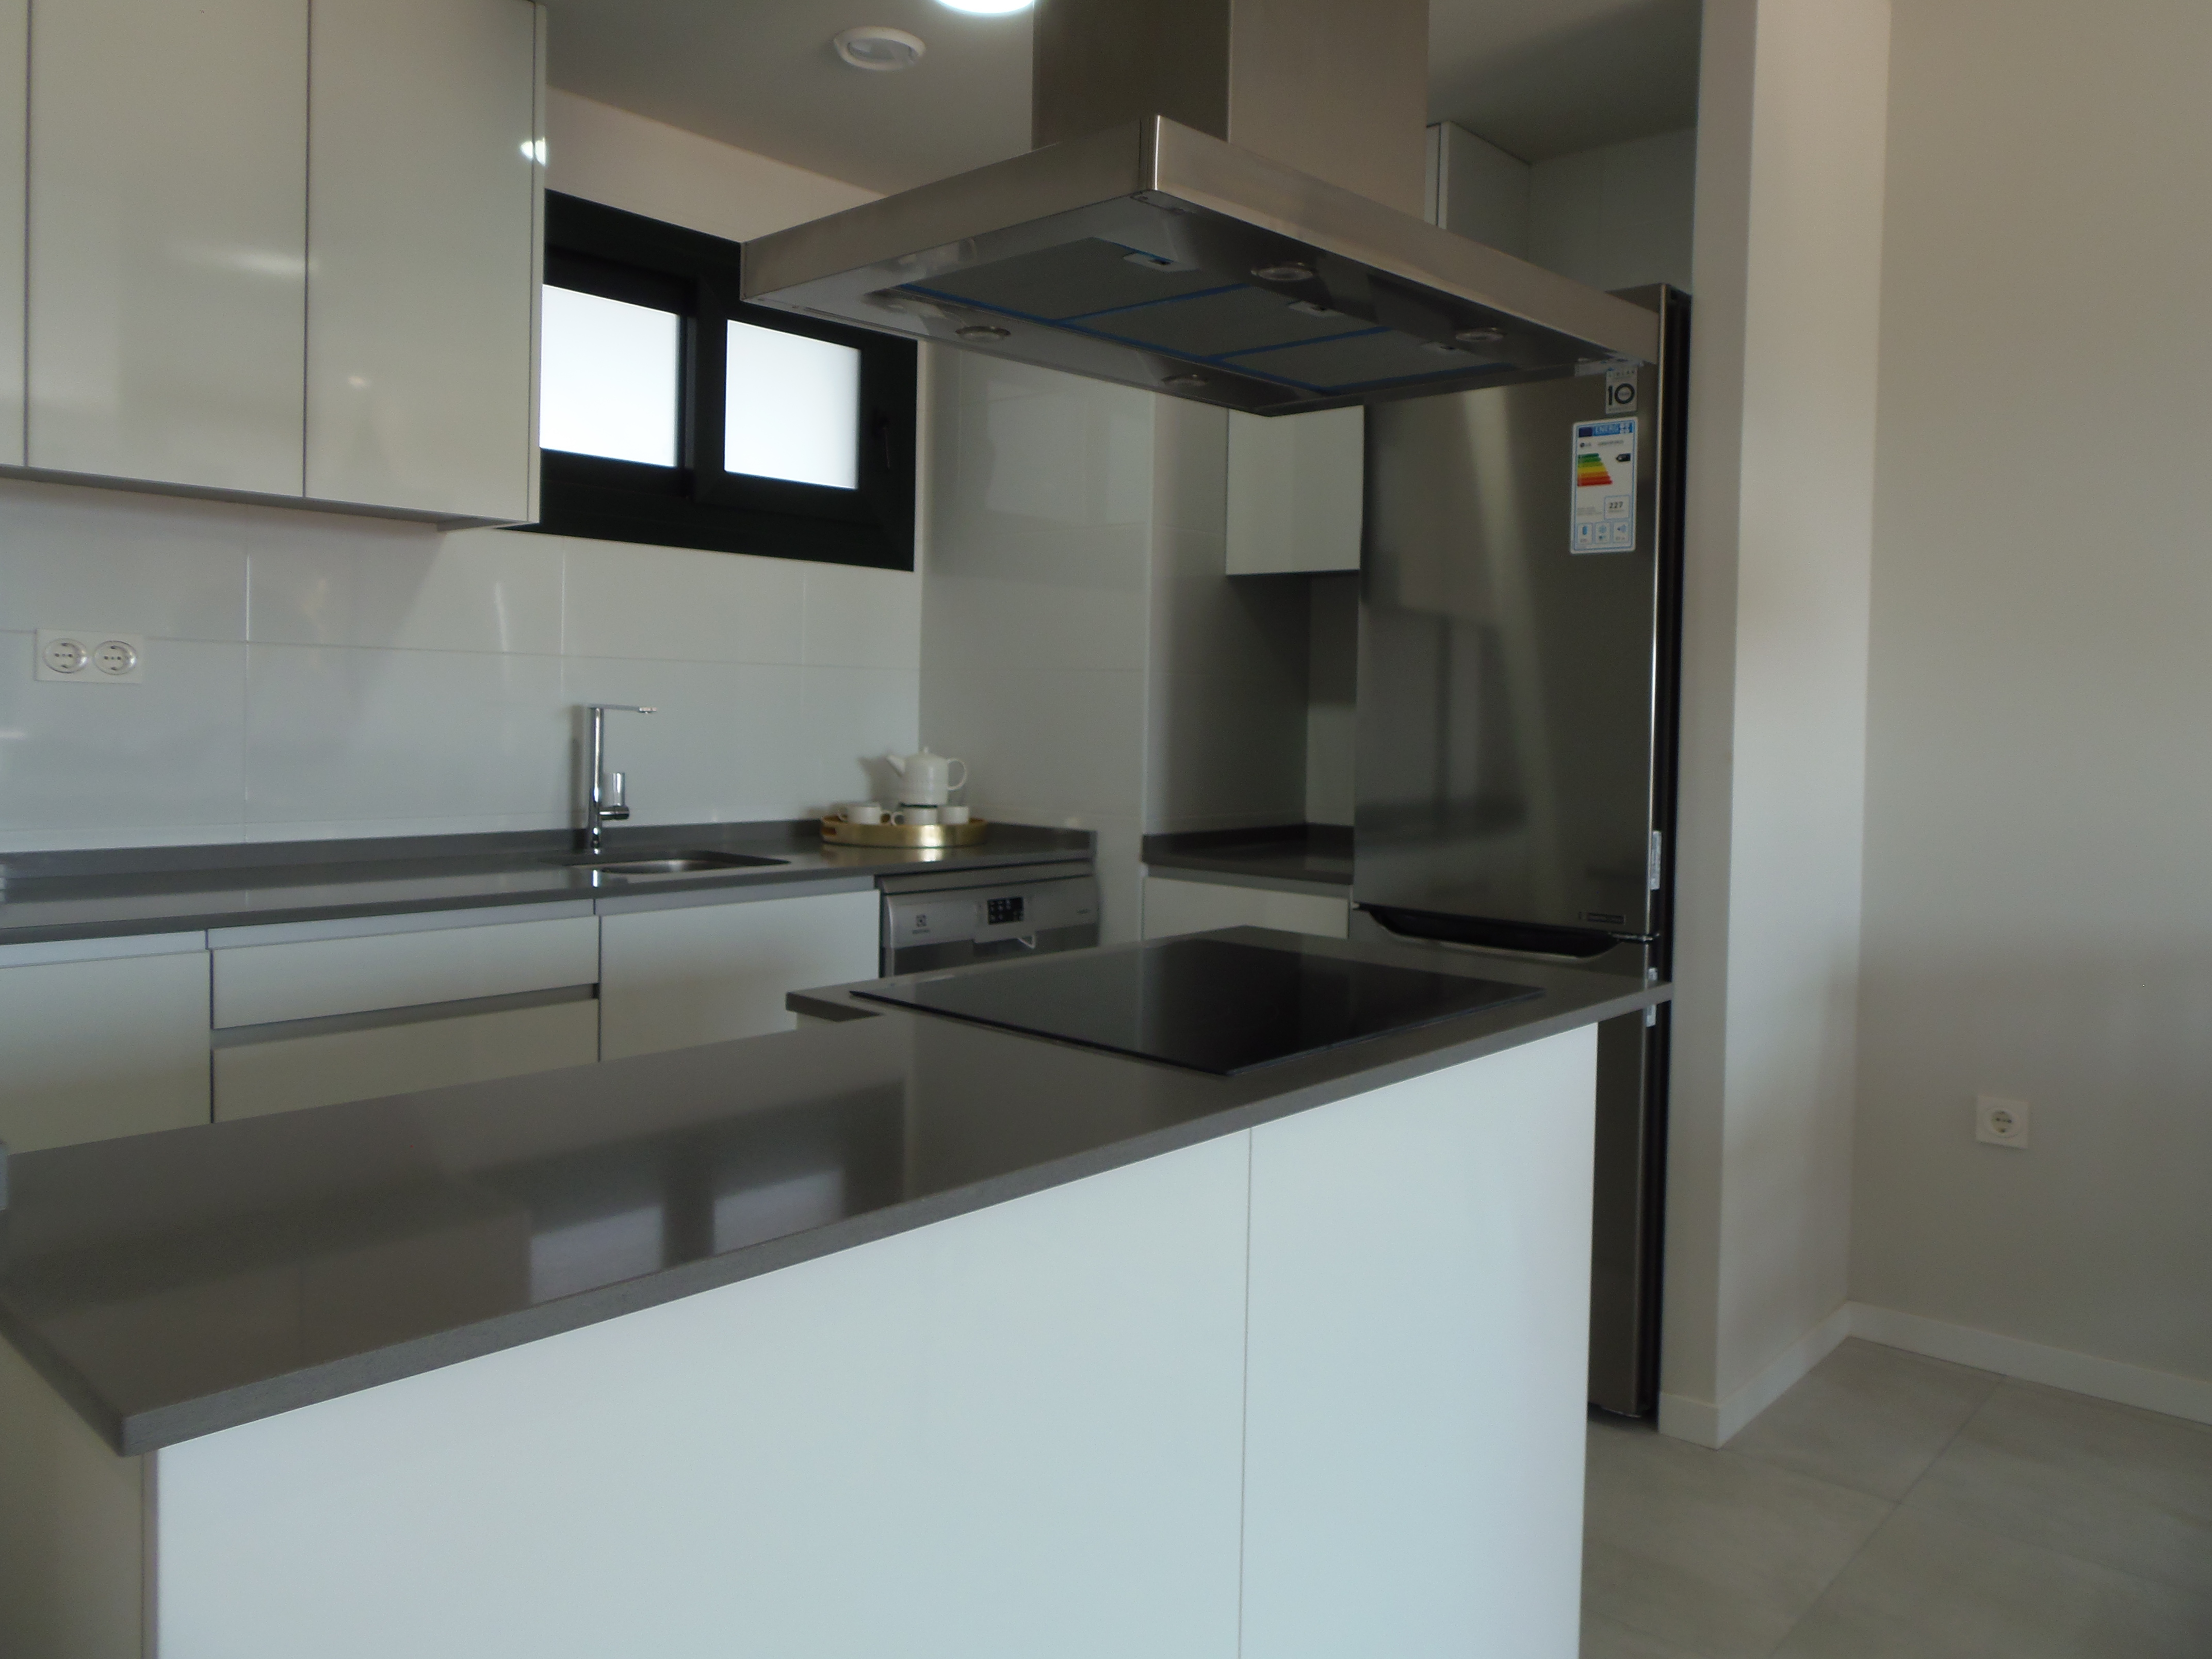 3 bedroom apartment For Sale in Mil Palmeras - photograph 25